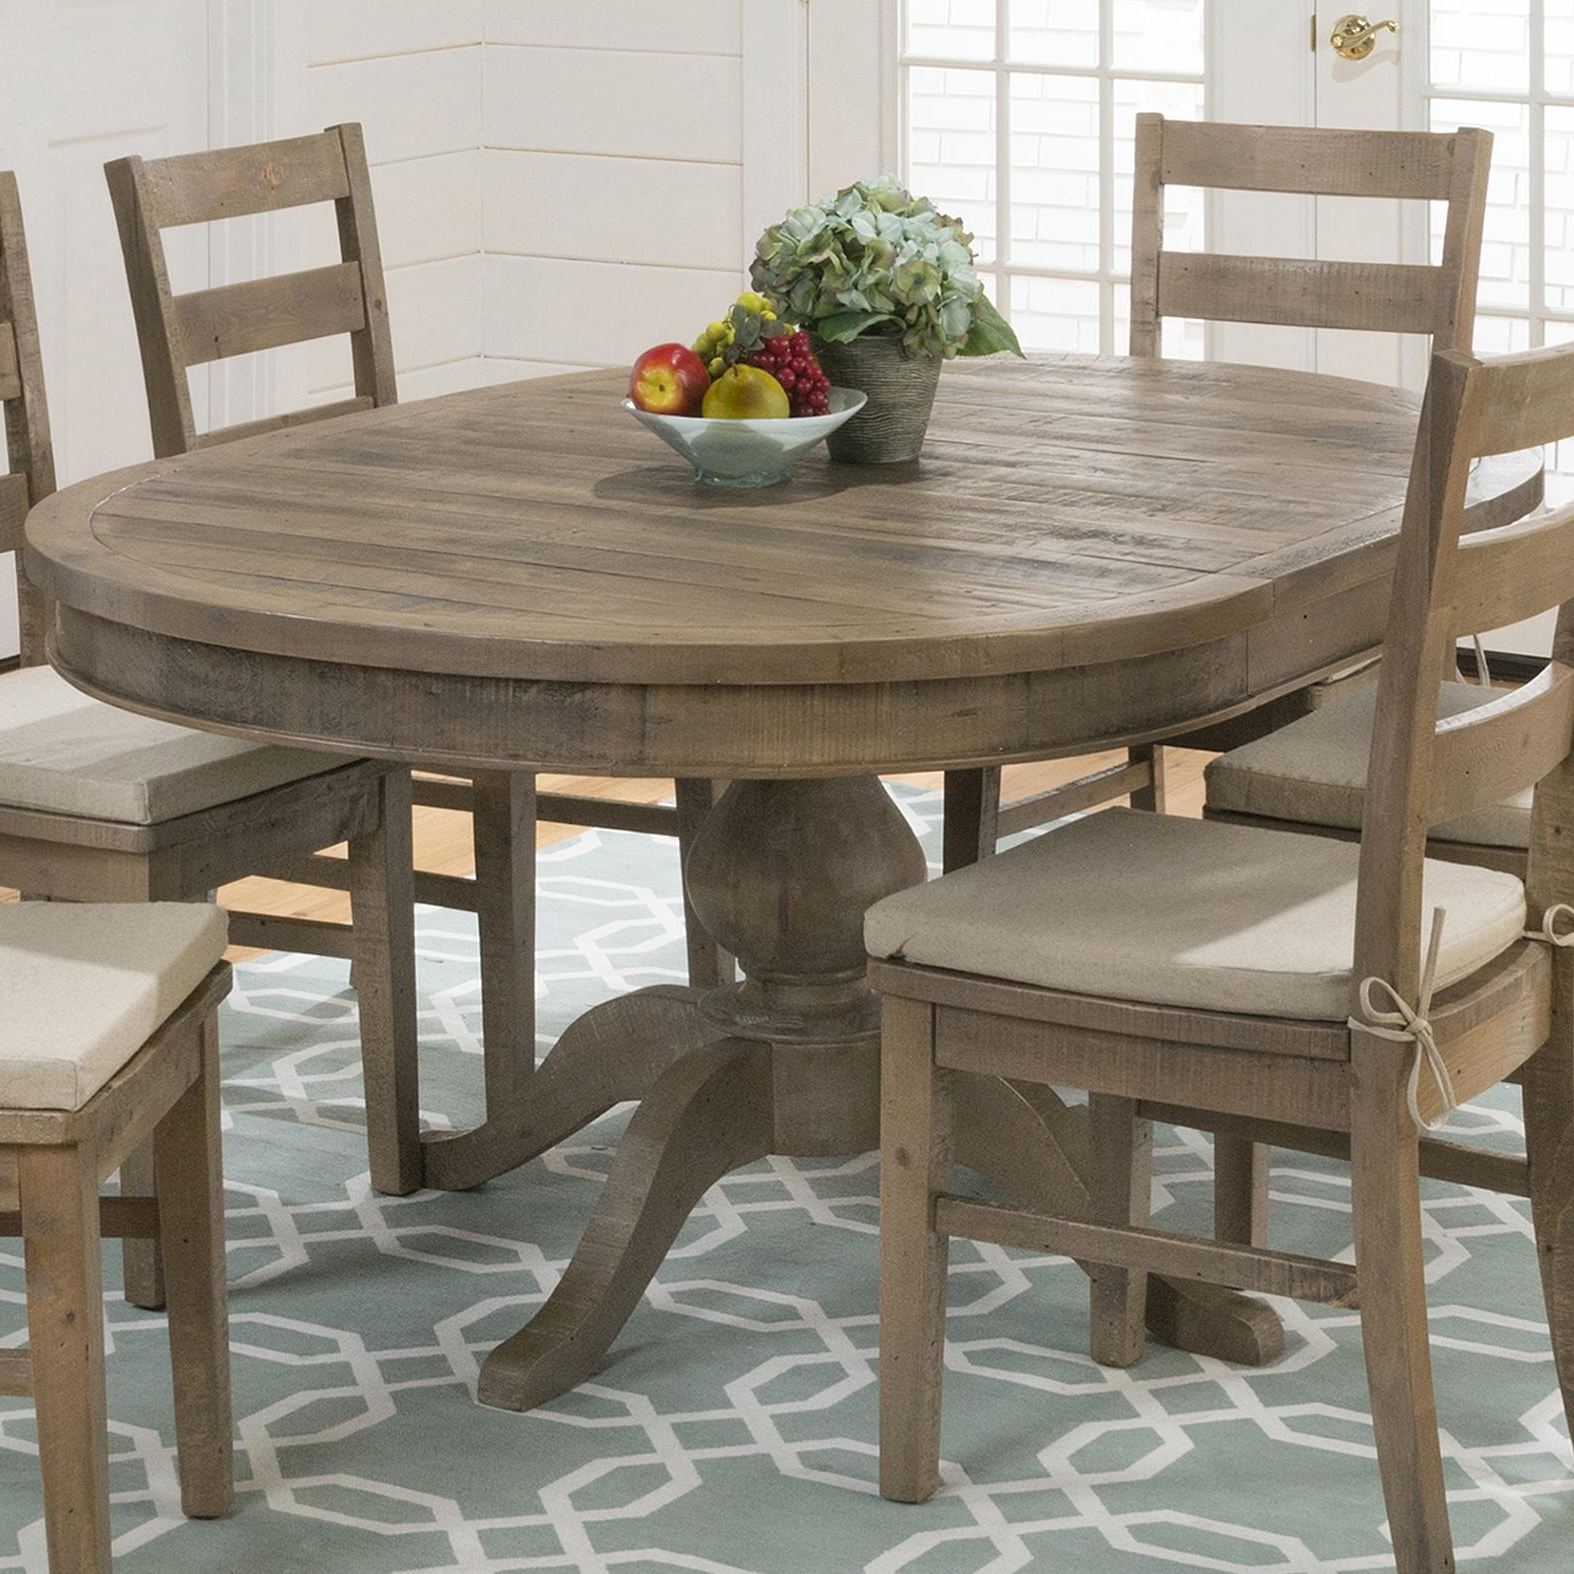 Oval Reclaimed Wood Dining Tables In Latest Viking Dining Table, Reclaimed Pine Furniture Jofran Reclaimed Pine (View 15 of 25)